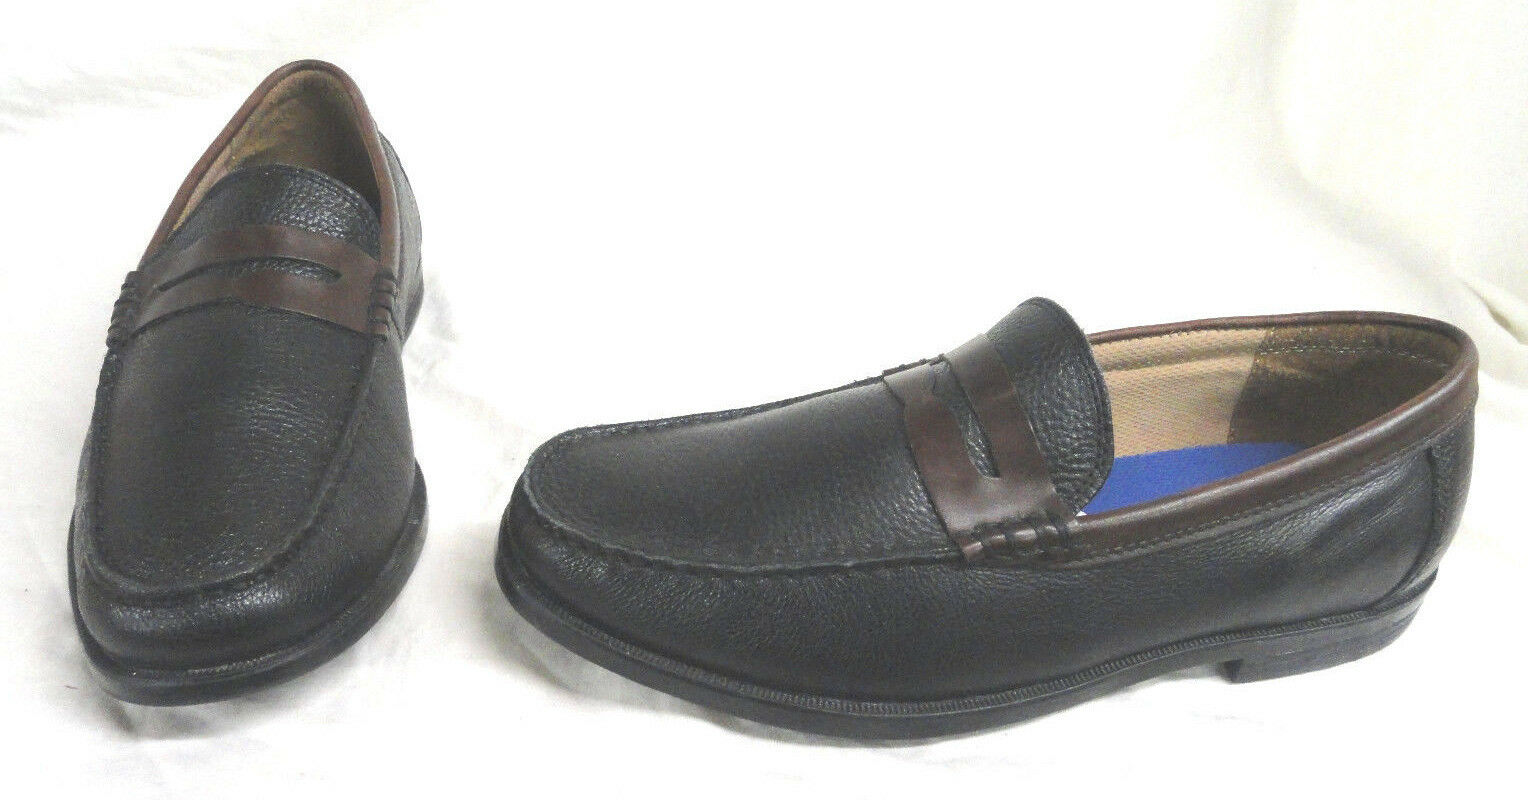 FLORSHEIM CRICKET PENNY, MENS noir LEATHER LOAFER chaussures, Taille 8.5 PRE-OWNED